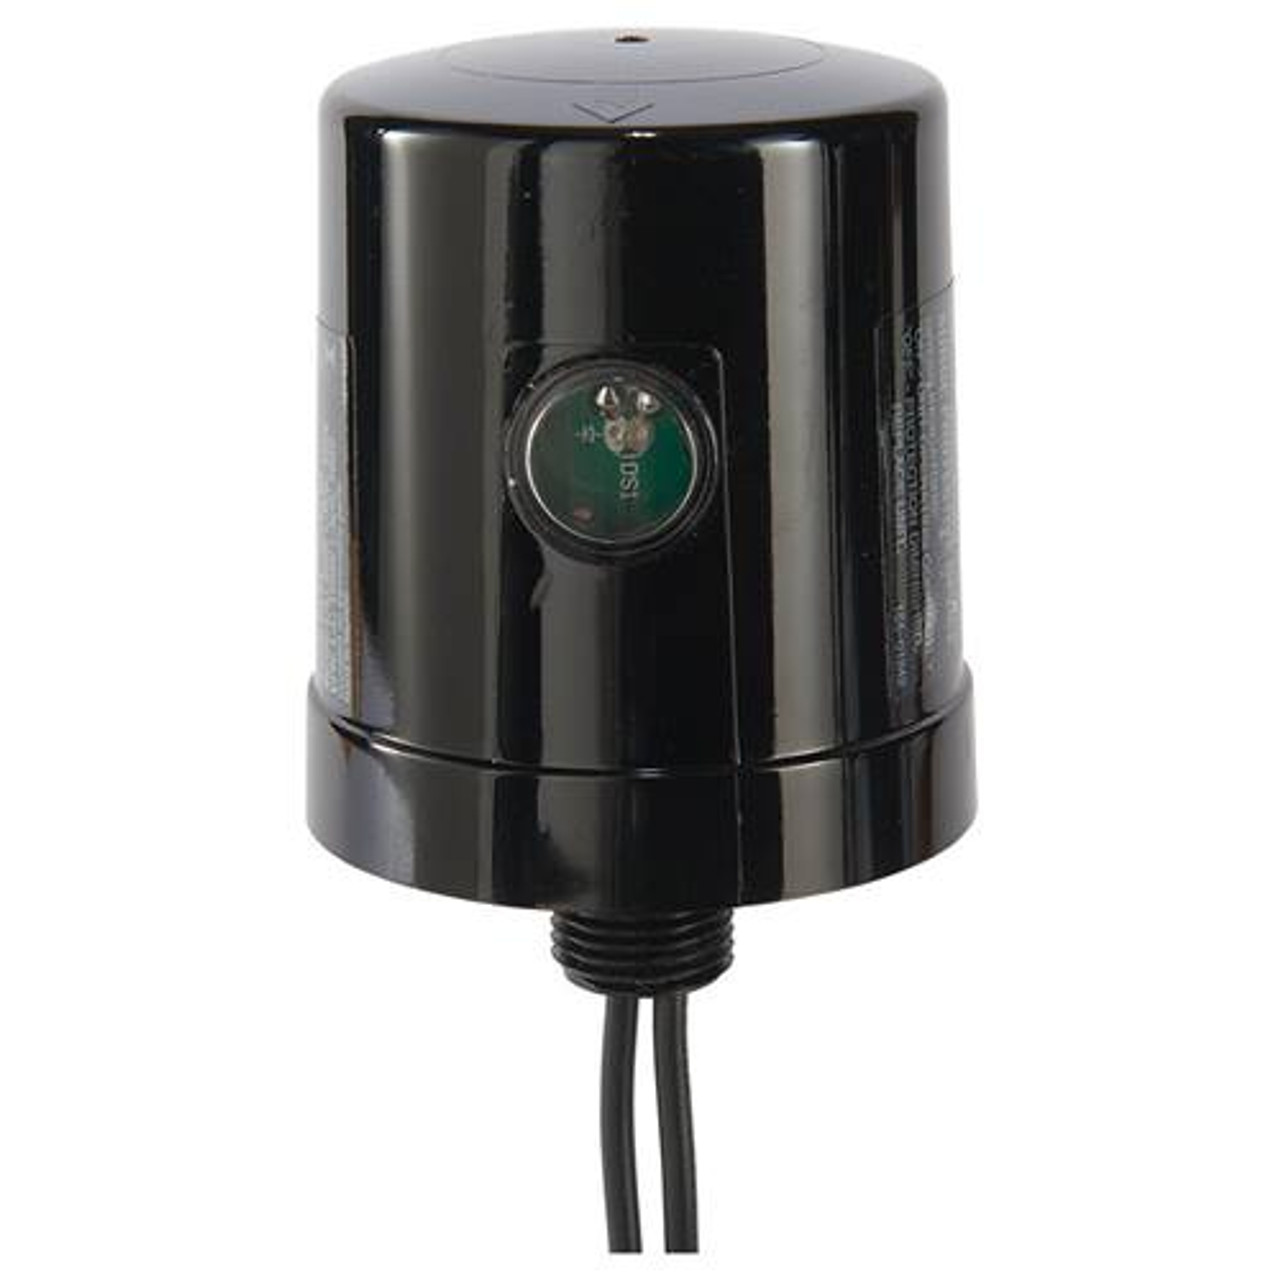 Intermatic AG6503C3 Surge Protective Device